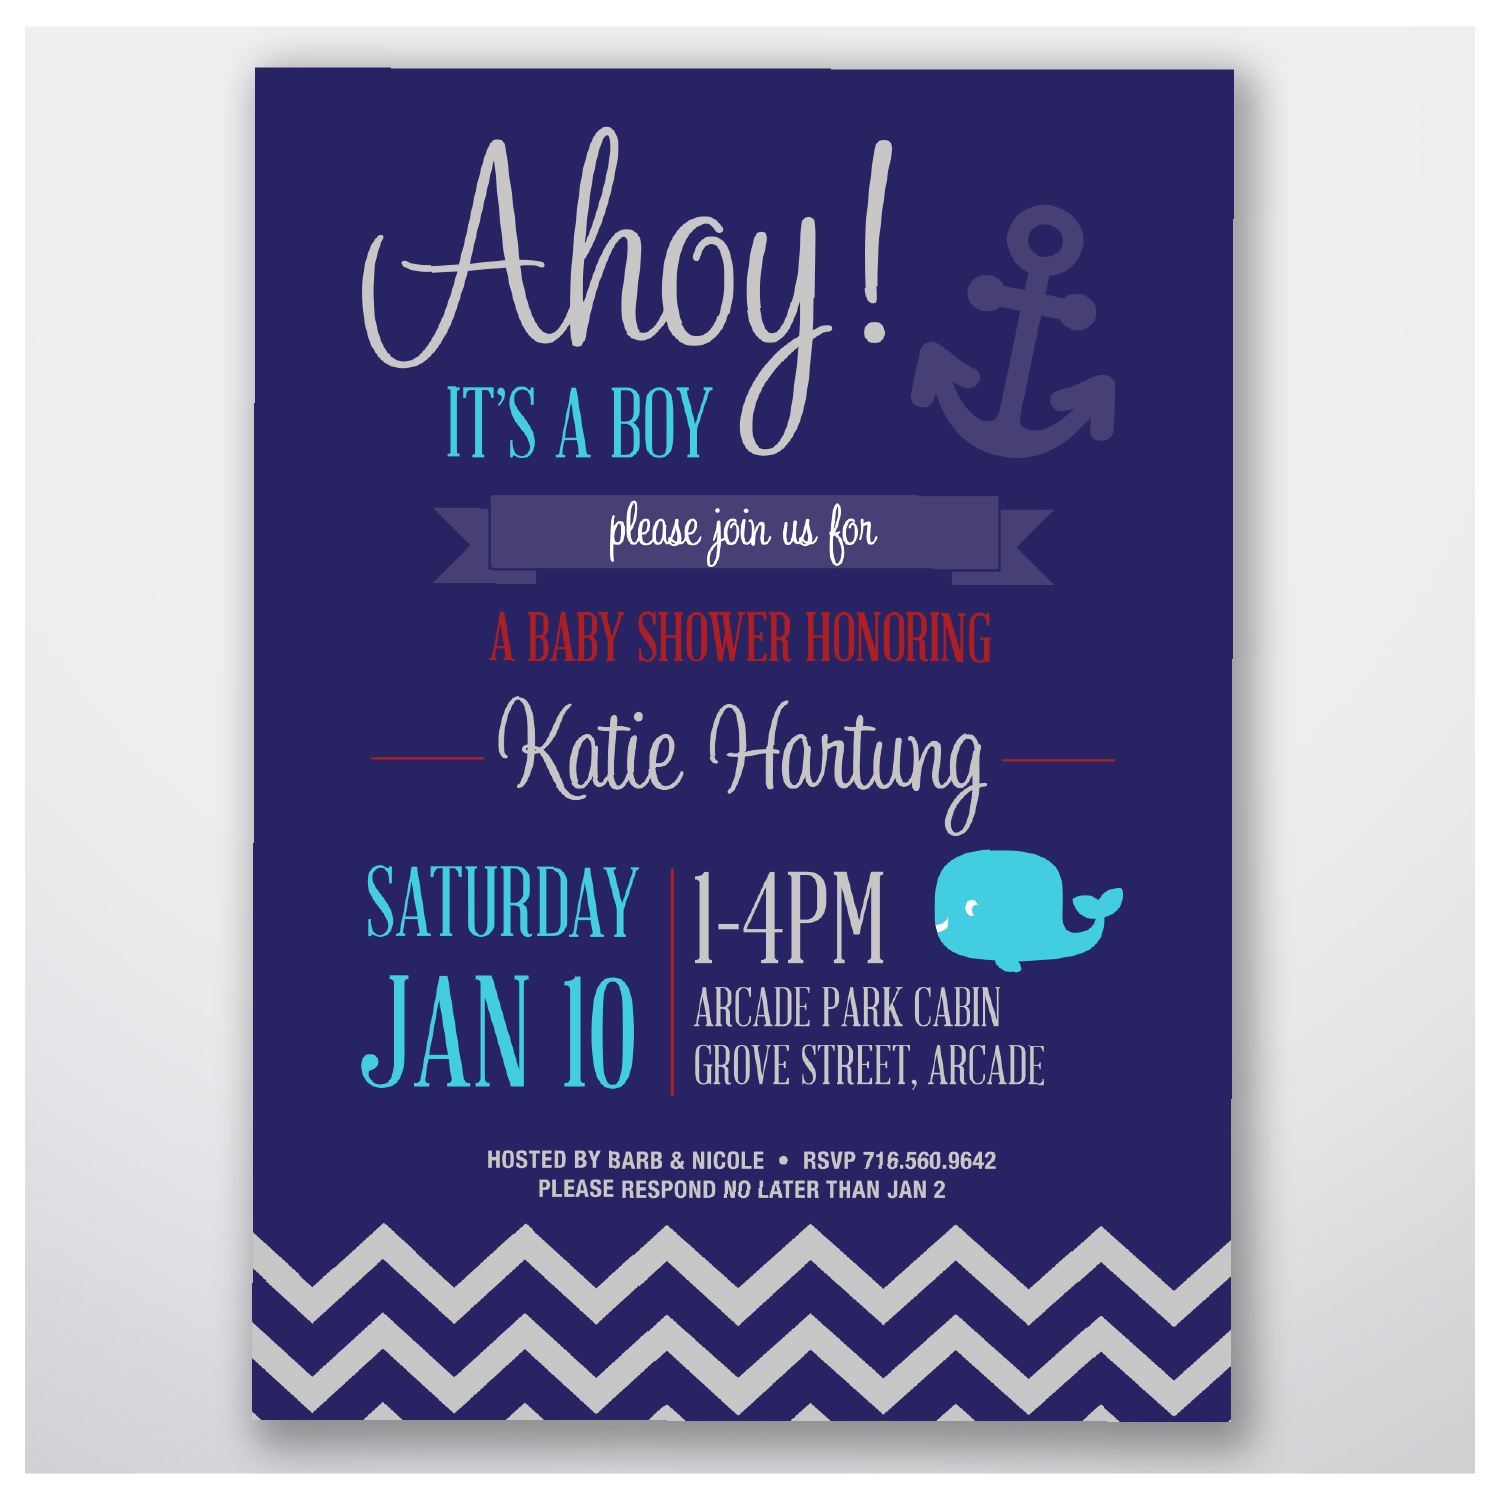 Invitations Katie Baby Shower-01.png